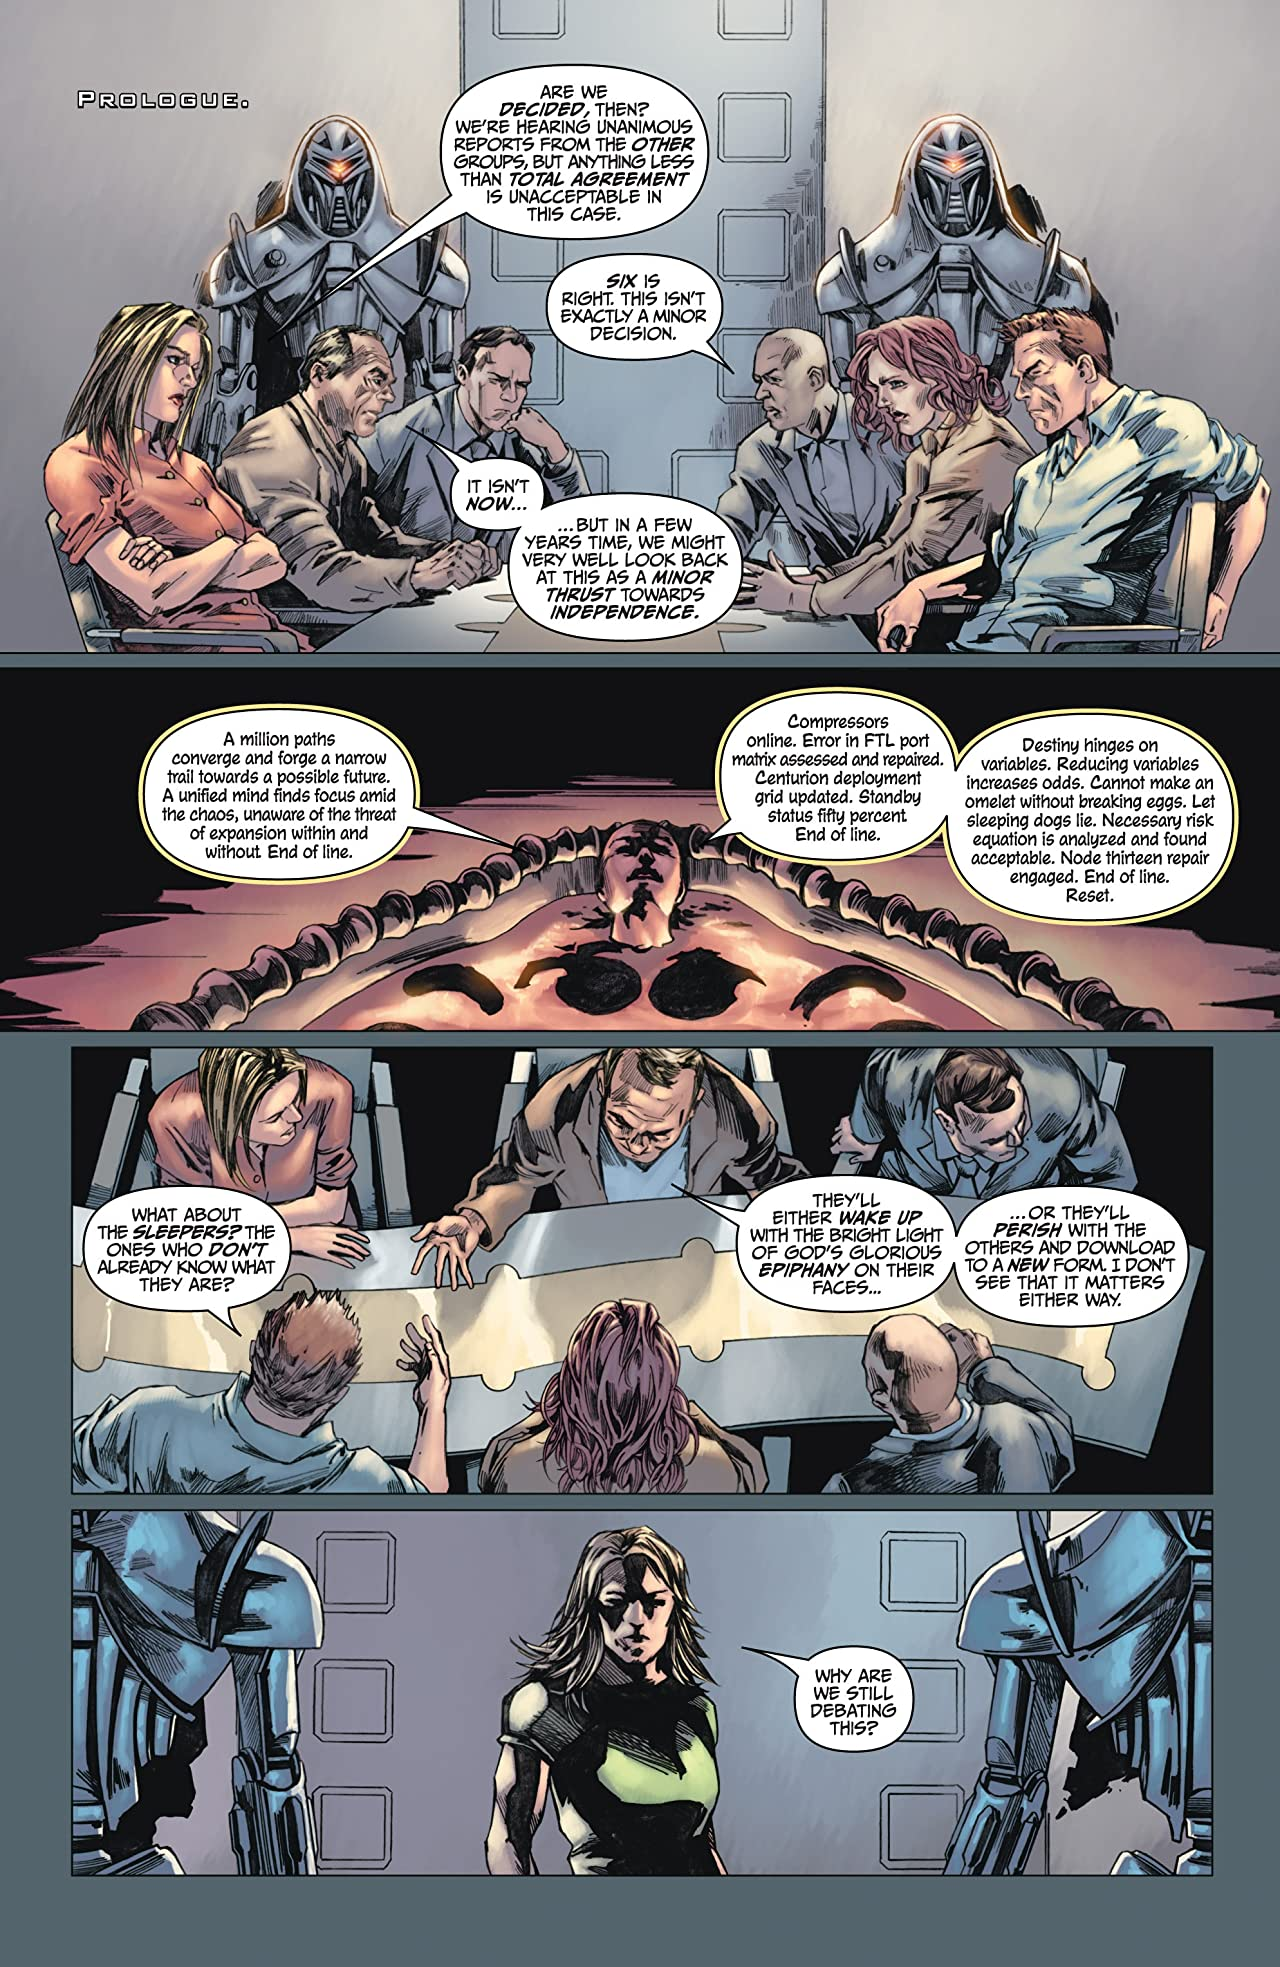 Battlestar Galactica #1 (of 4): Ghosts